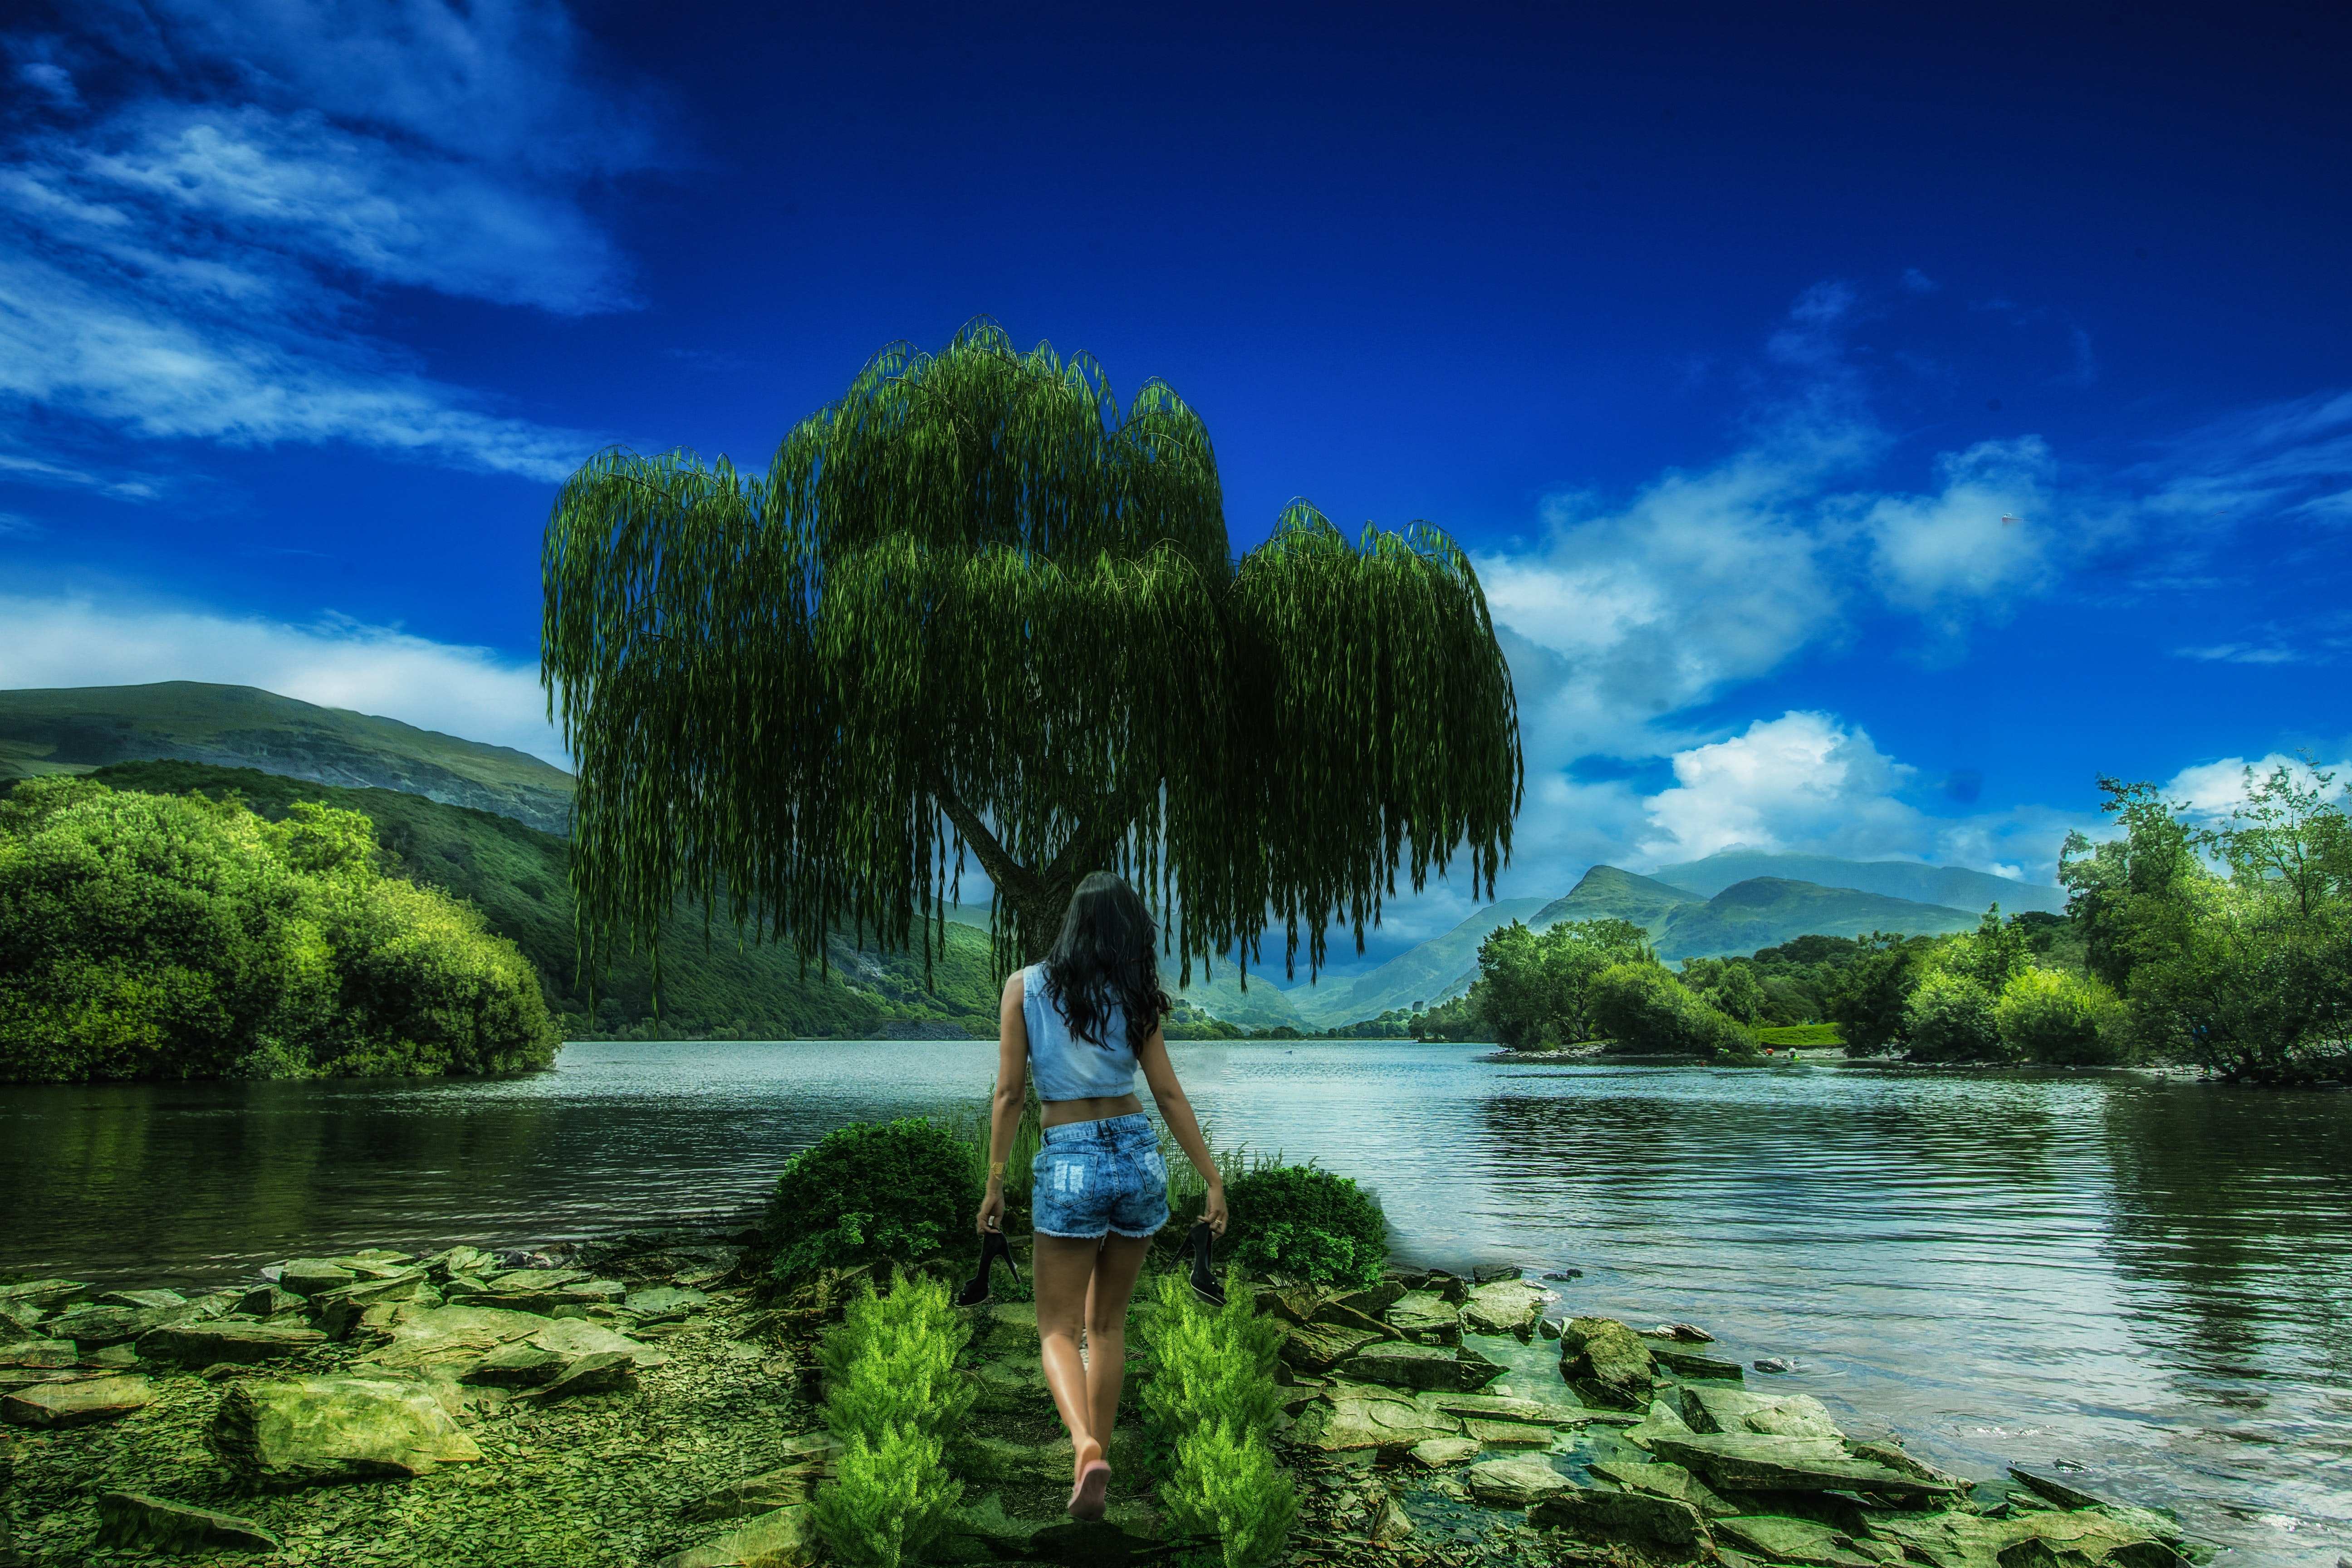 Woman in blue denim shorts walking to tree beside lake - Girl wallpaper hd for mobile free download ...